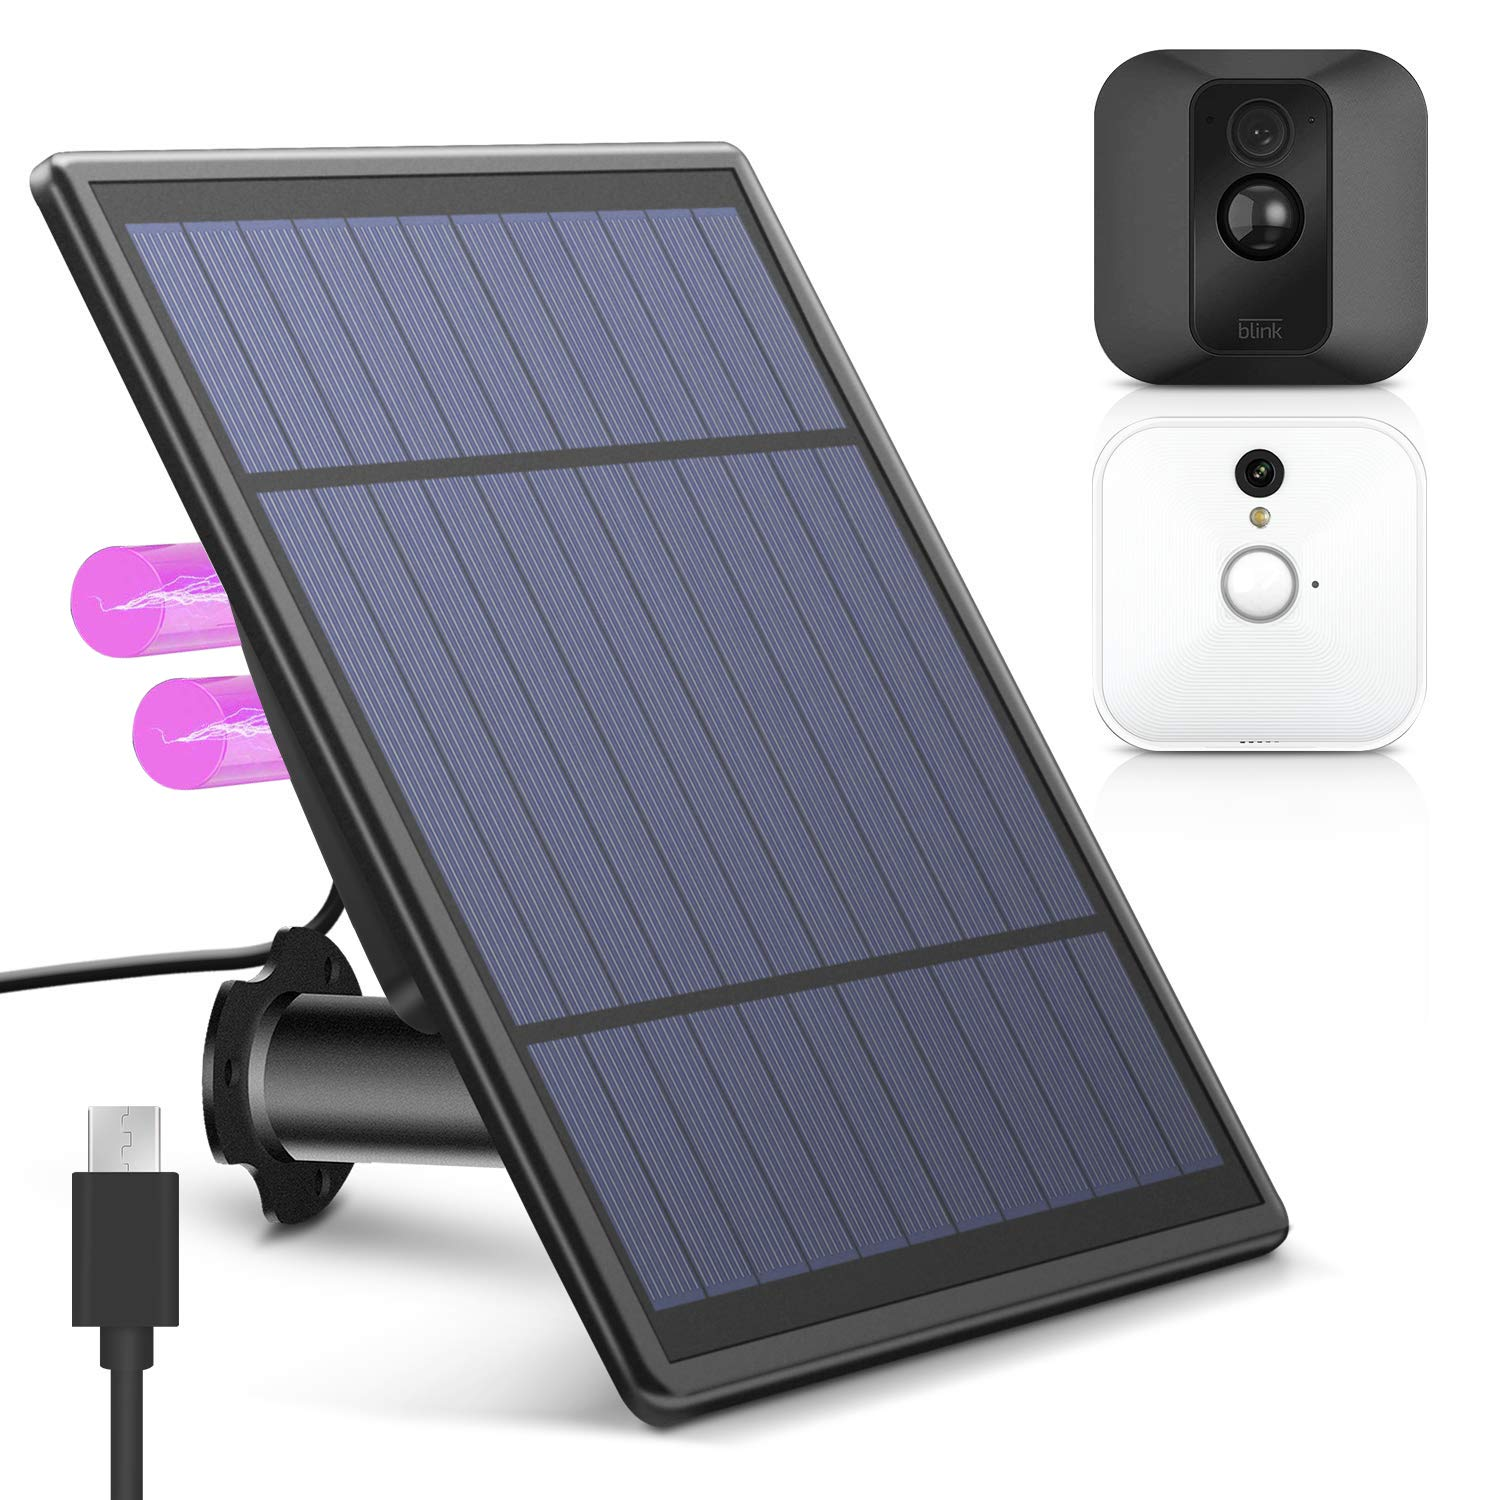 KASMOTION [Upgraded Version Solar Panel for Blink XT XT 2 Security Camera, Wall Mount Outdoor Weather Proof Solar Power Charging Panel for Blink XT XT 2 Home Security Camera System by KASMOTION